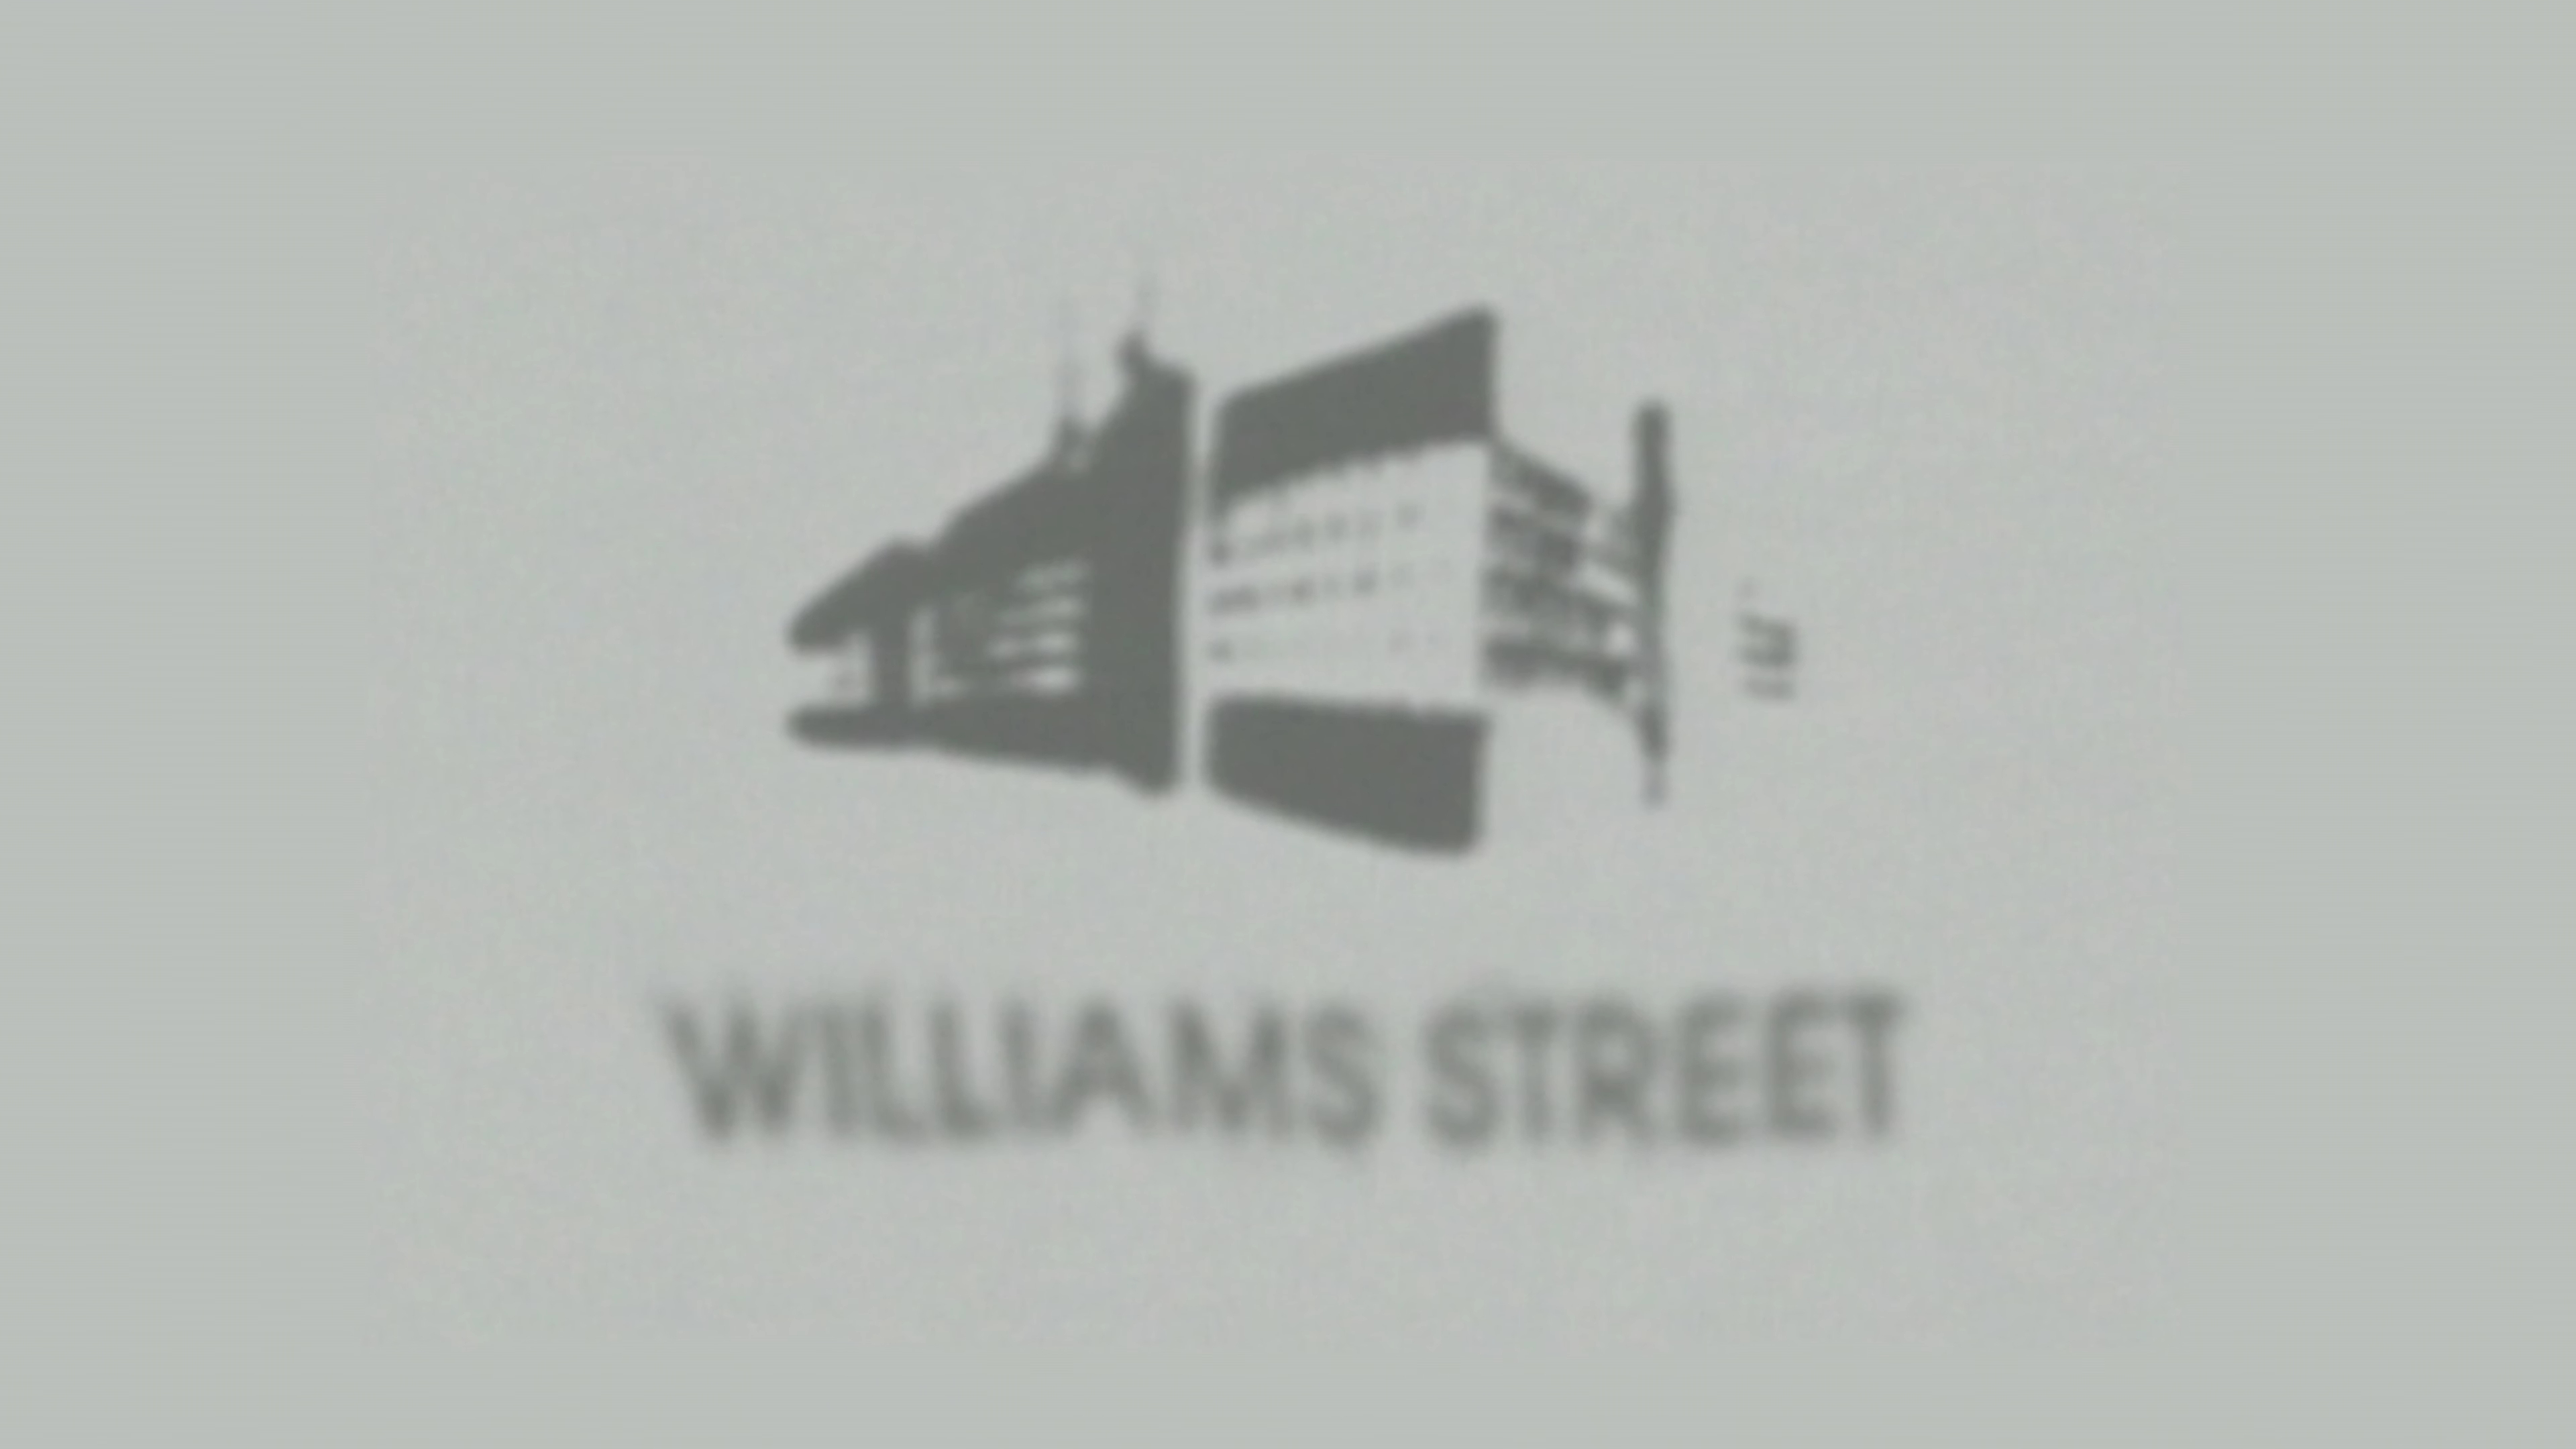 File:Williams Street.jpg